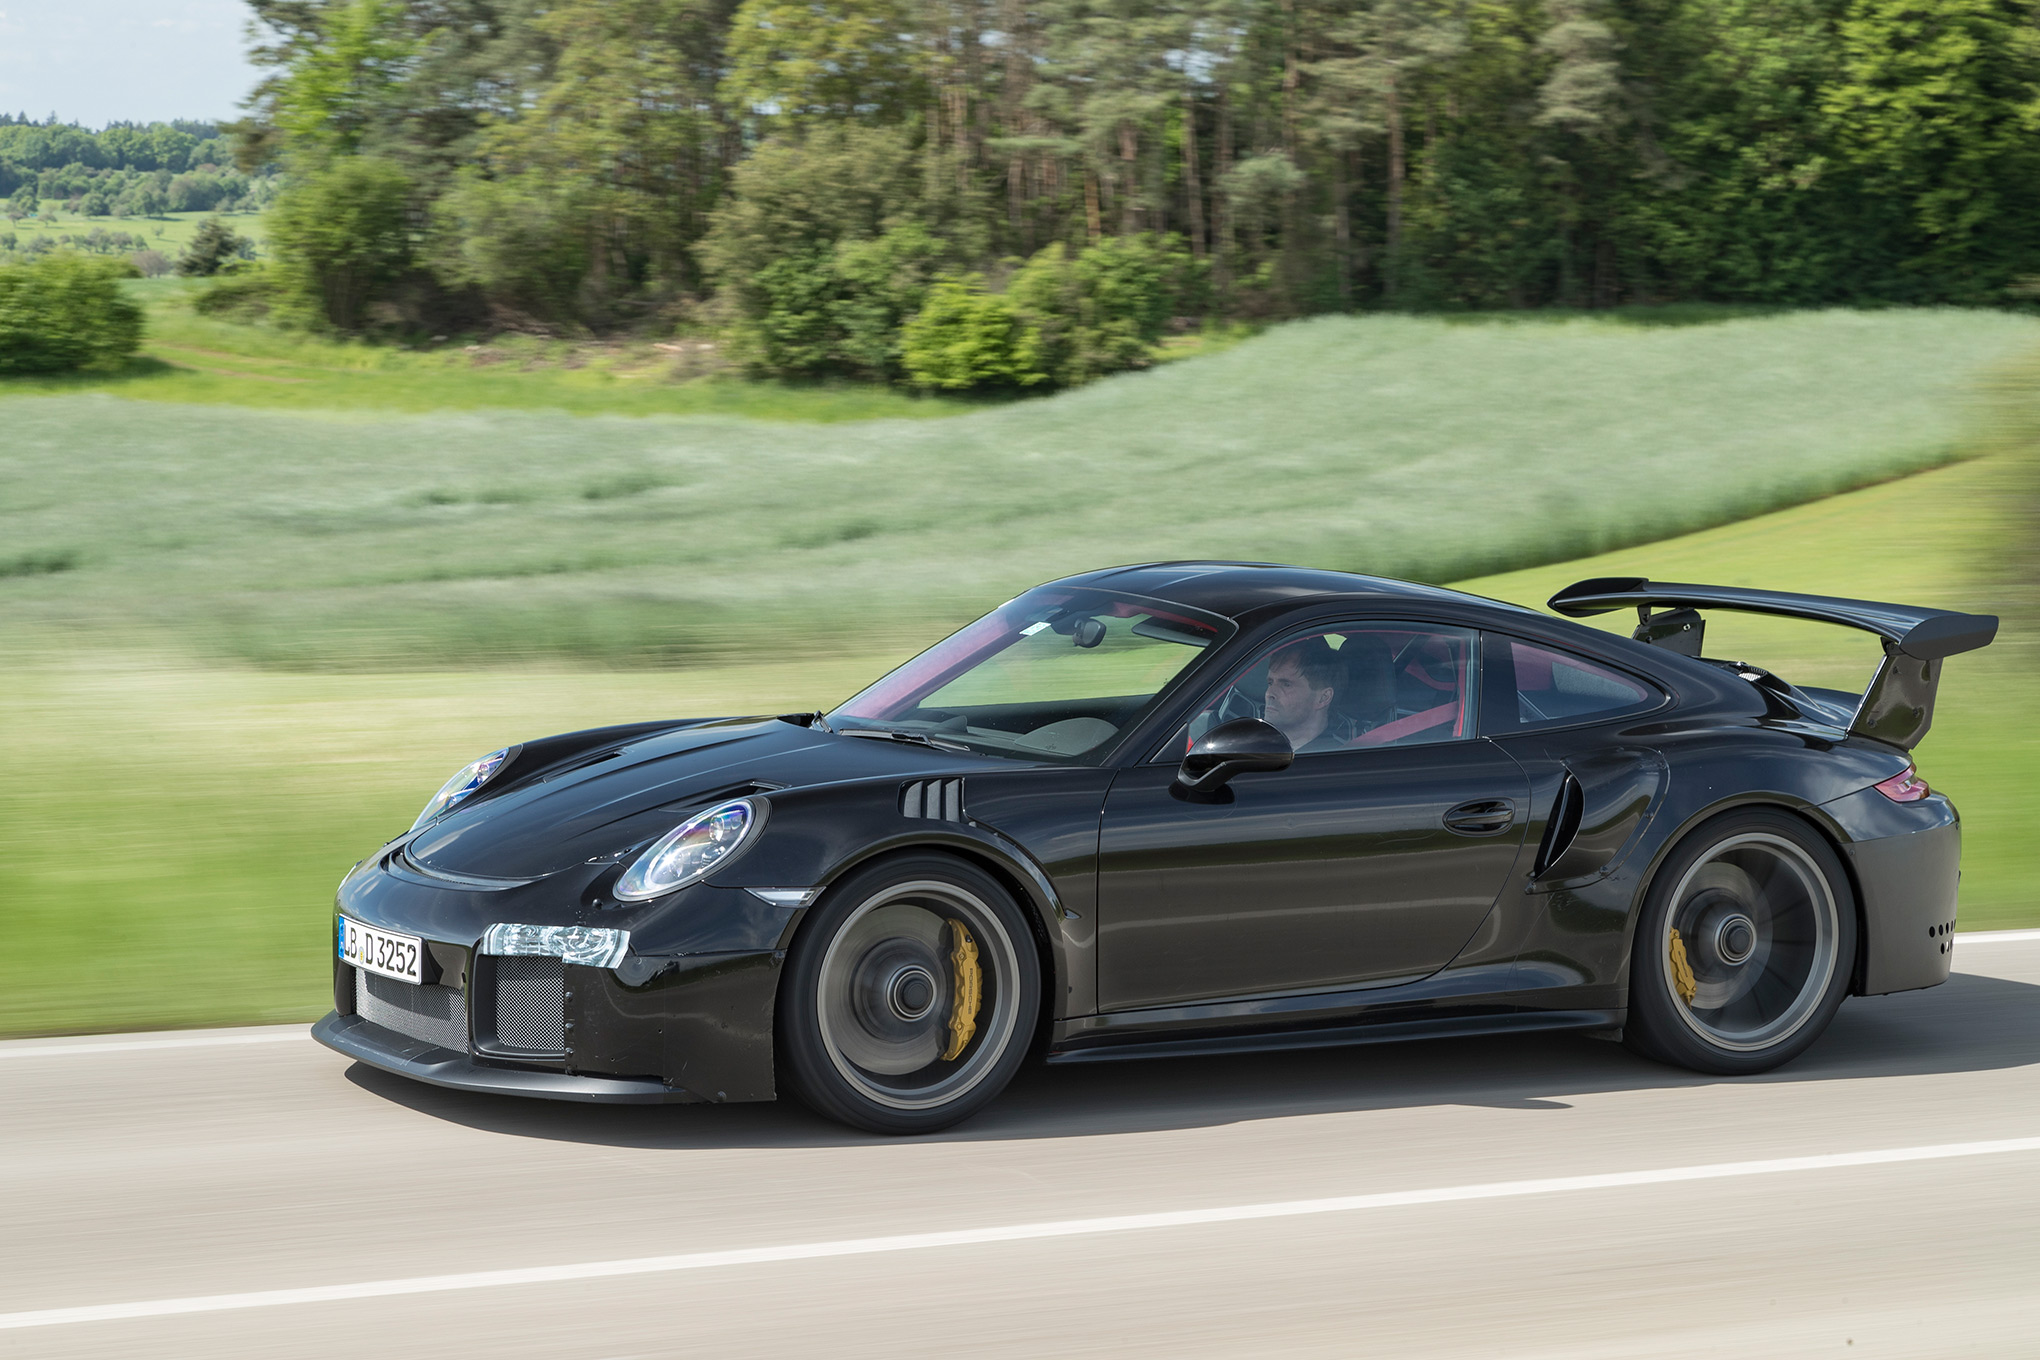 Porsche-911-GT2-RS.jpg3_ Interesting Porsche 911 Gt2 and Gt3 Cars Trend